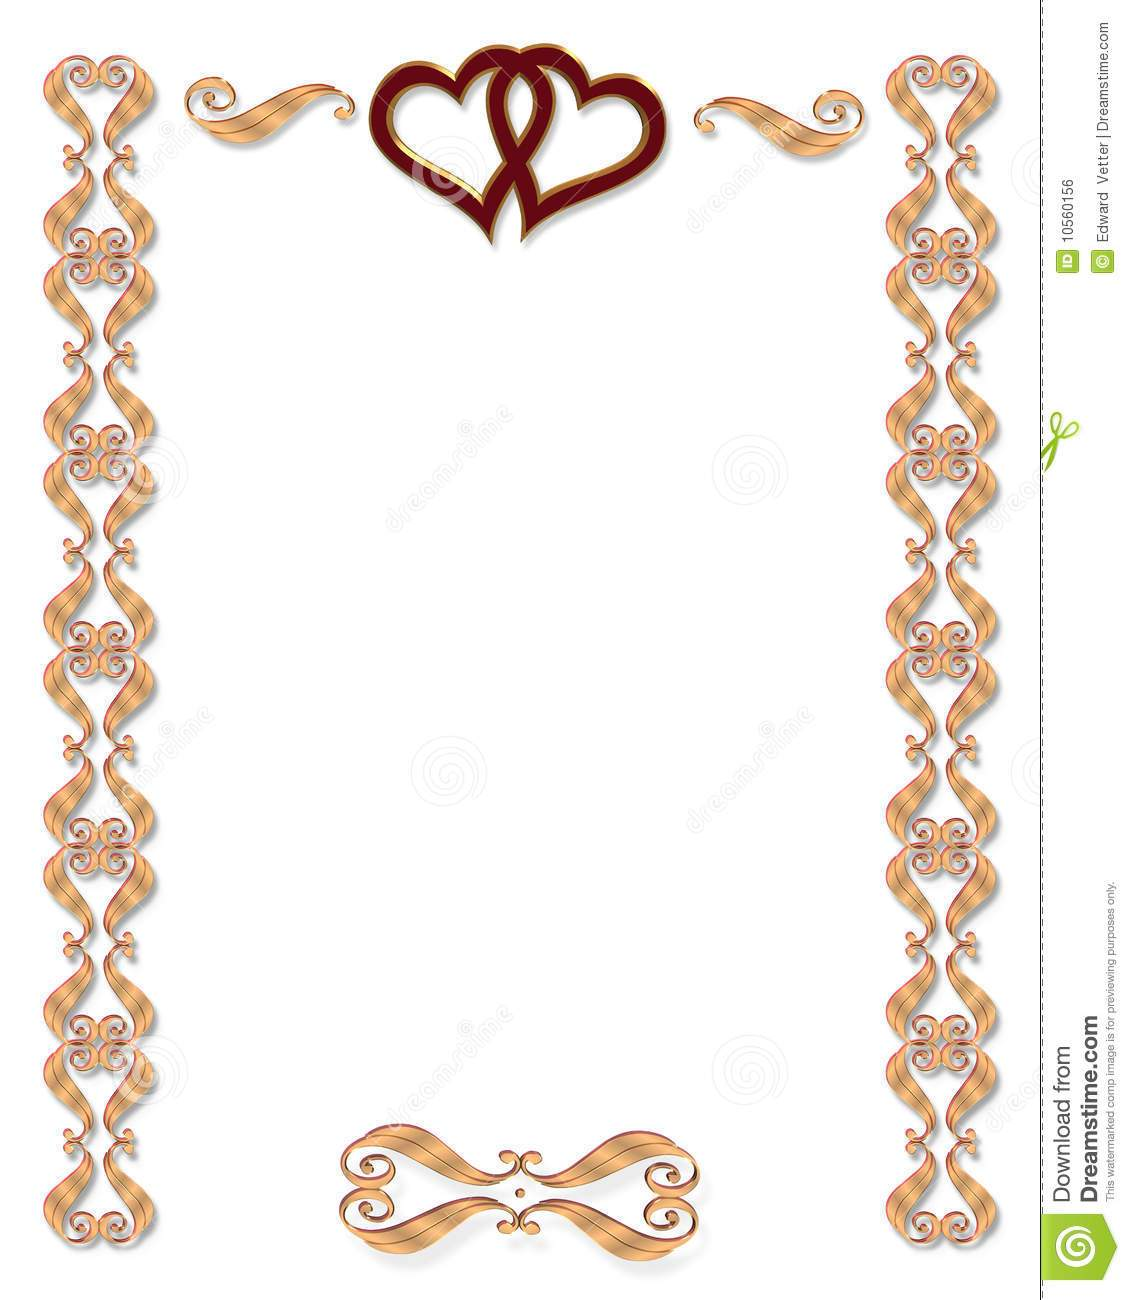 1130x1300 Free Wedding Borders For Invitations Images